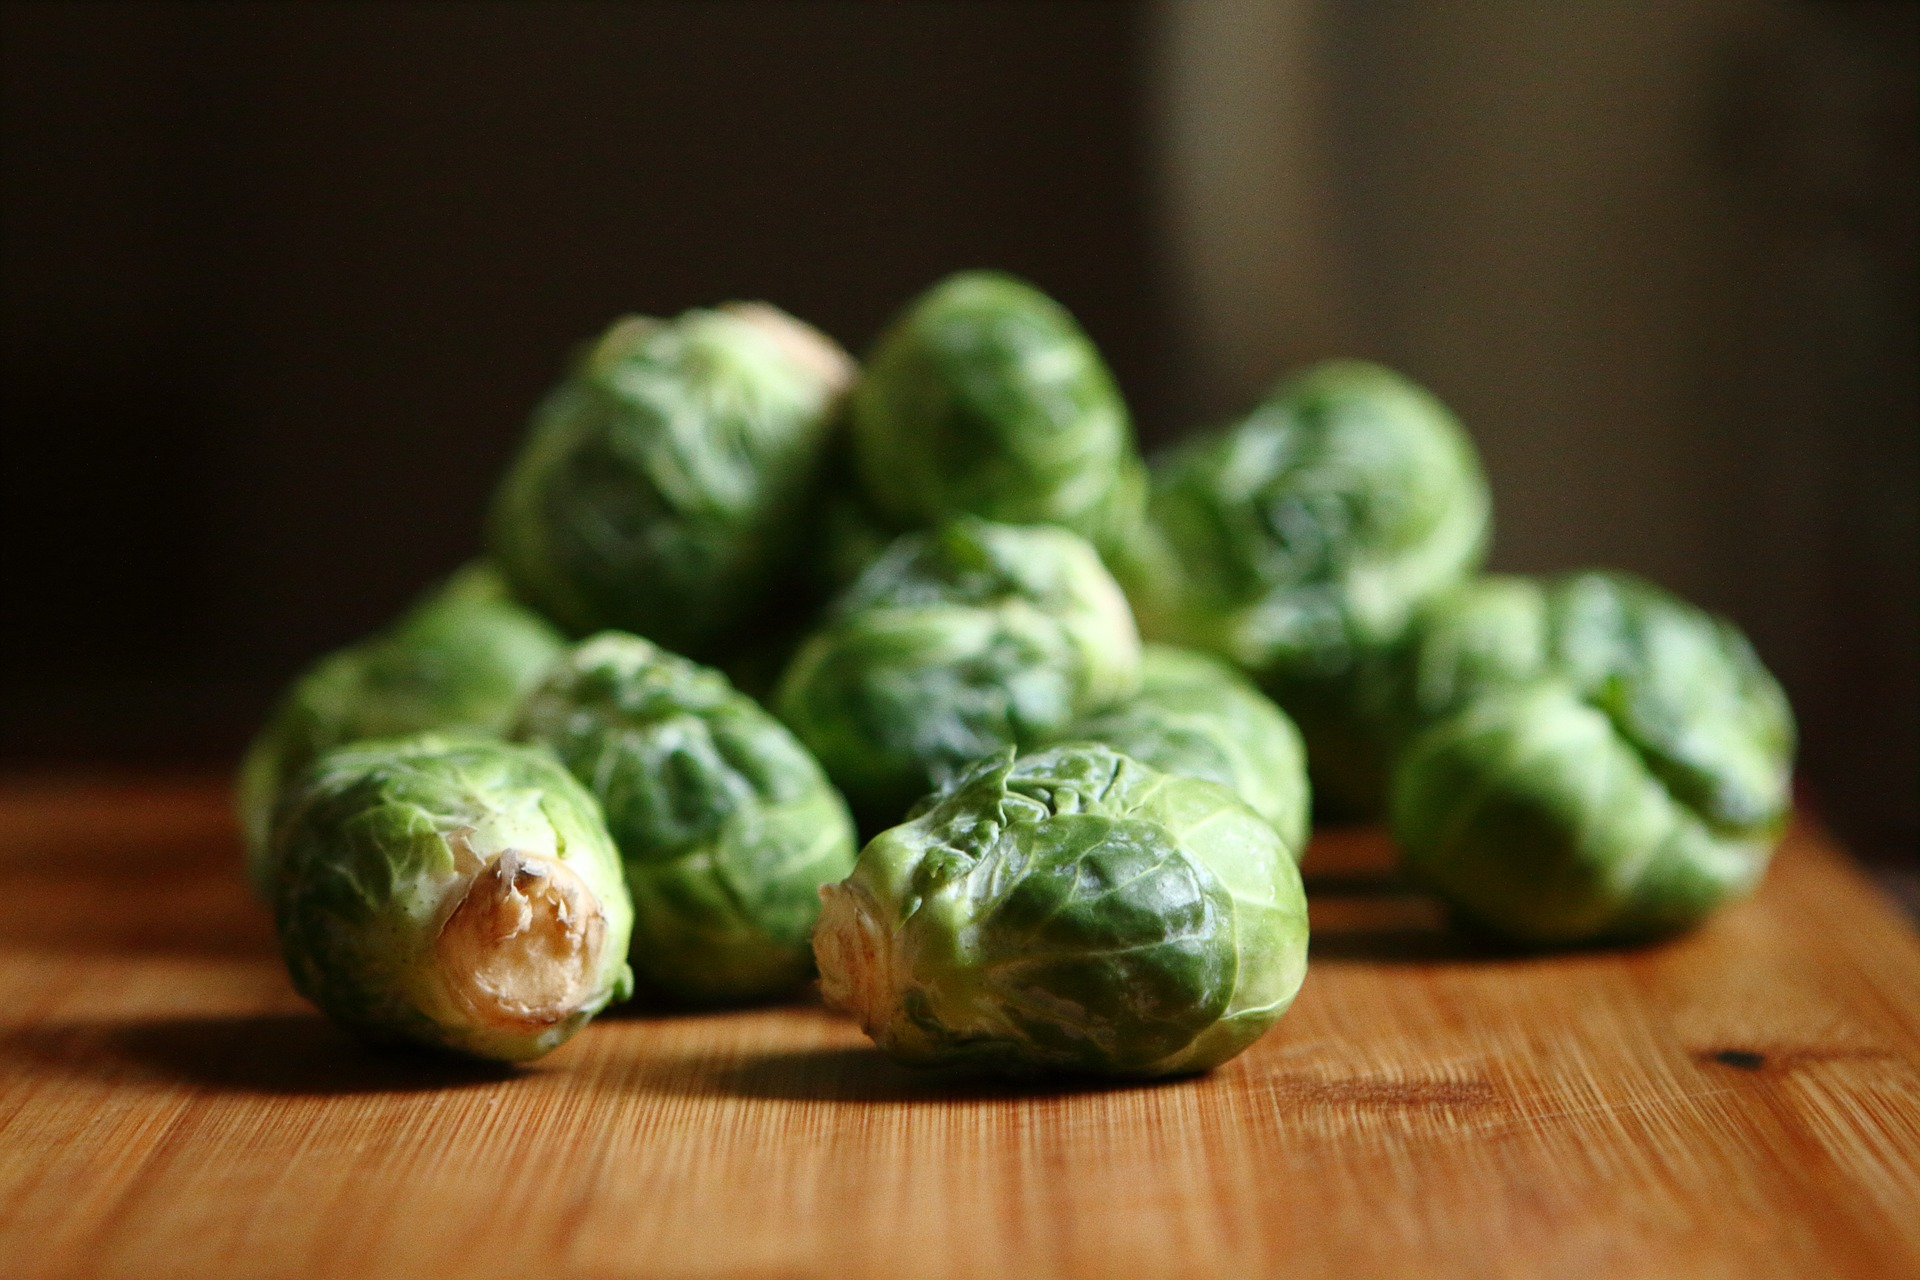 brussels-sprouts-865315_1920.jpg